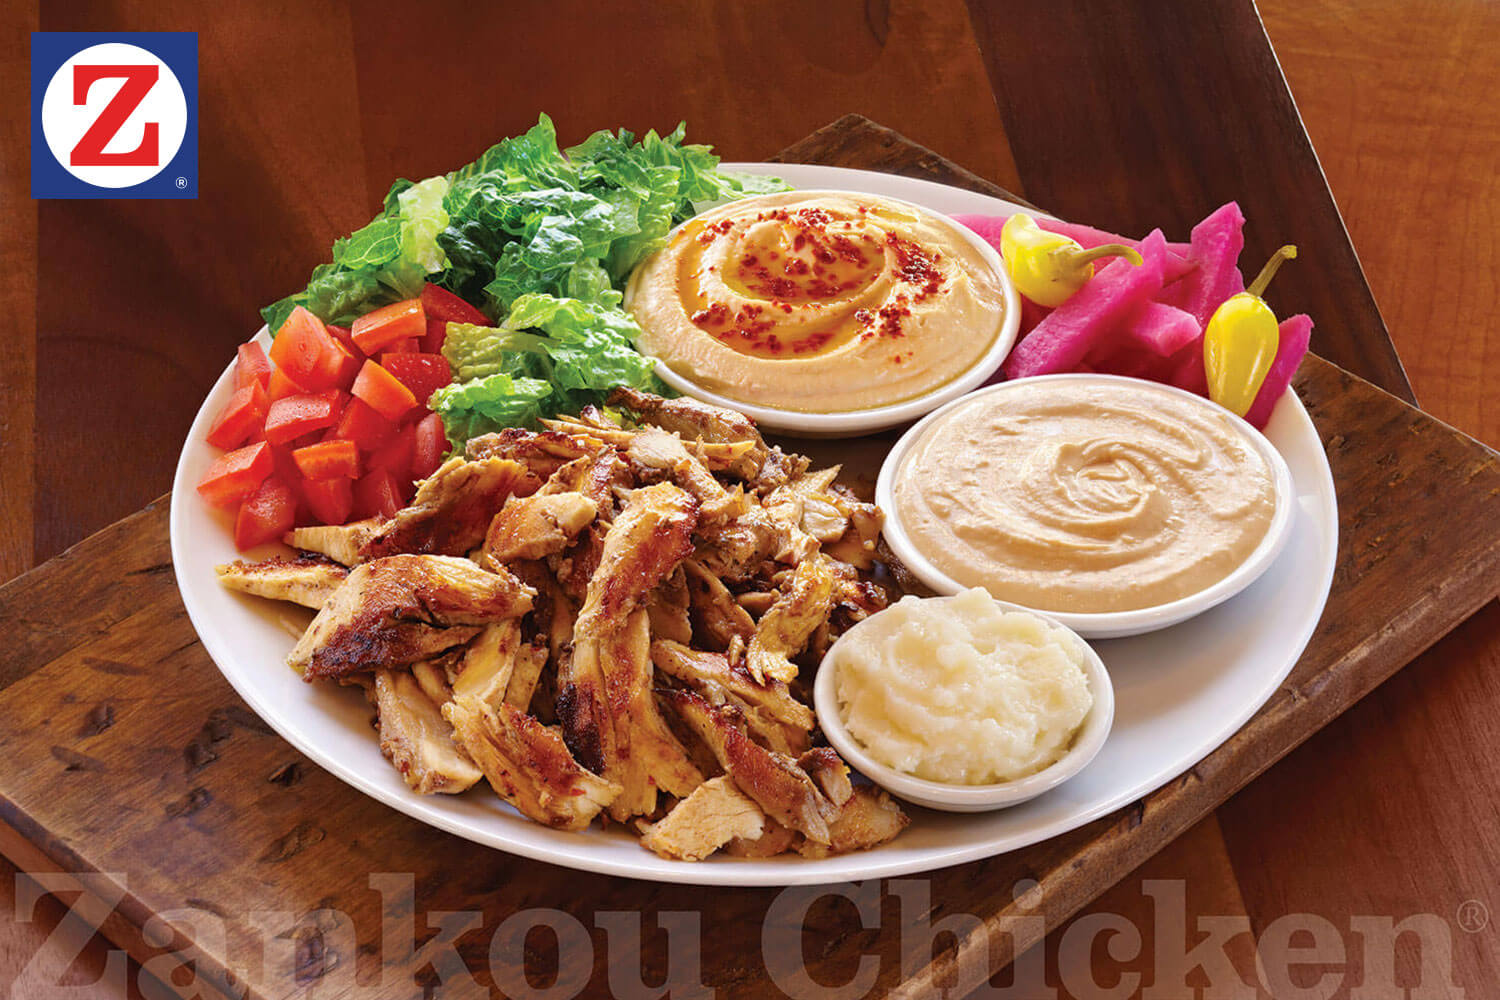 Chicken tarna plate with sides